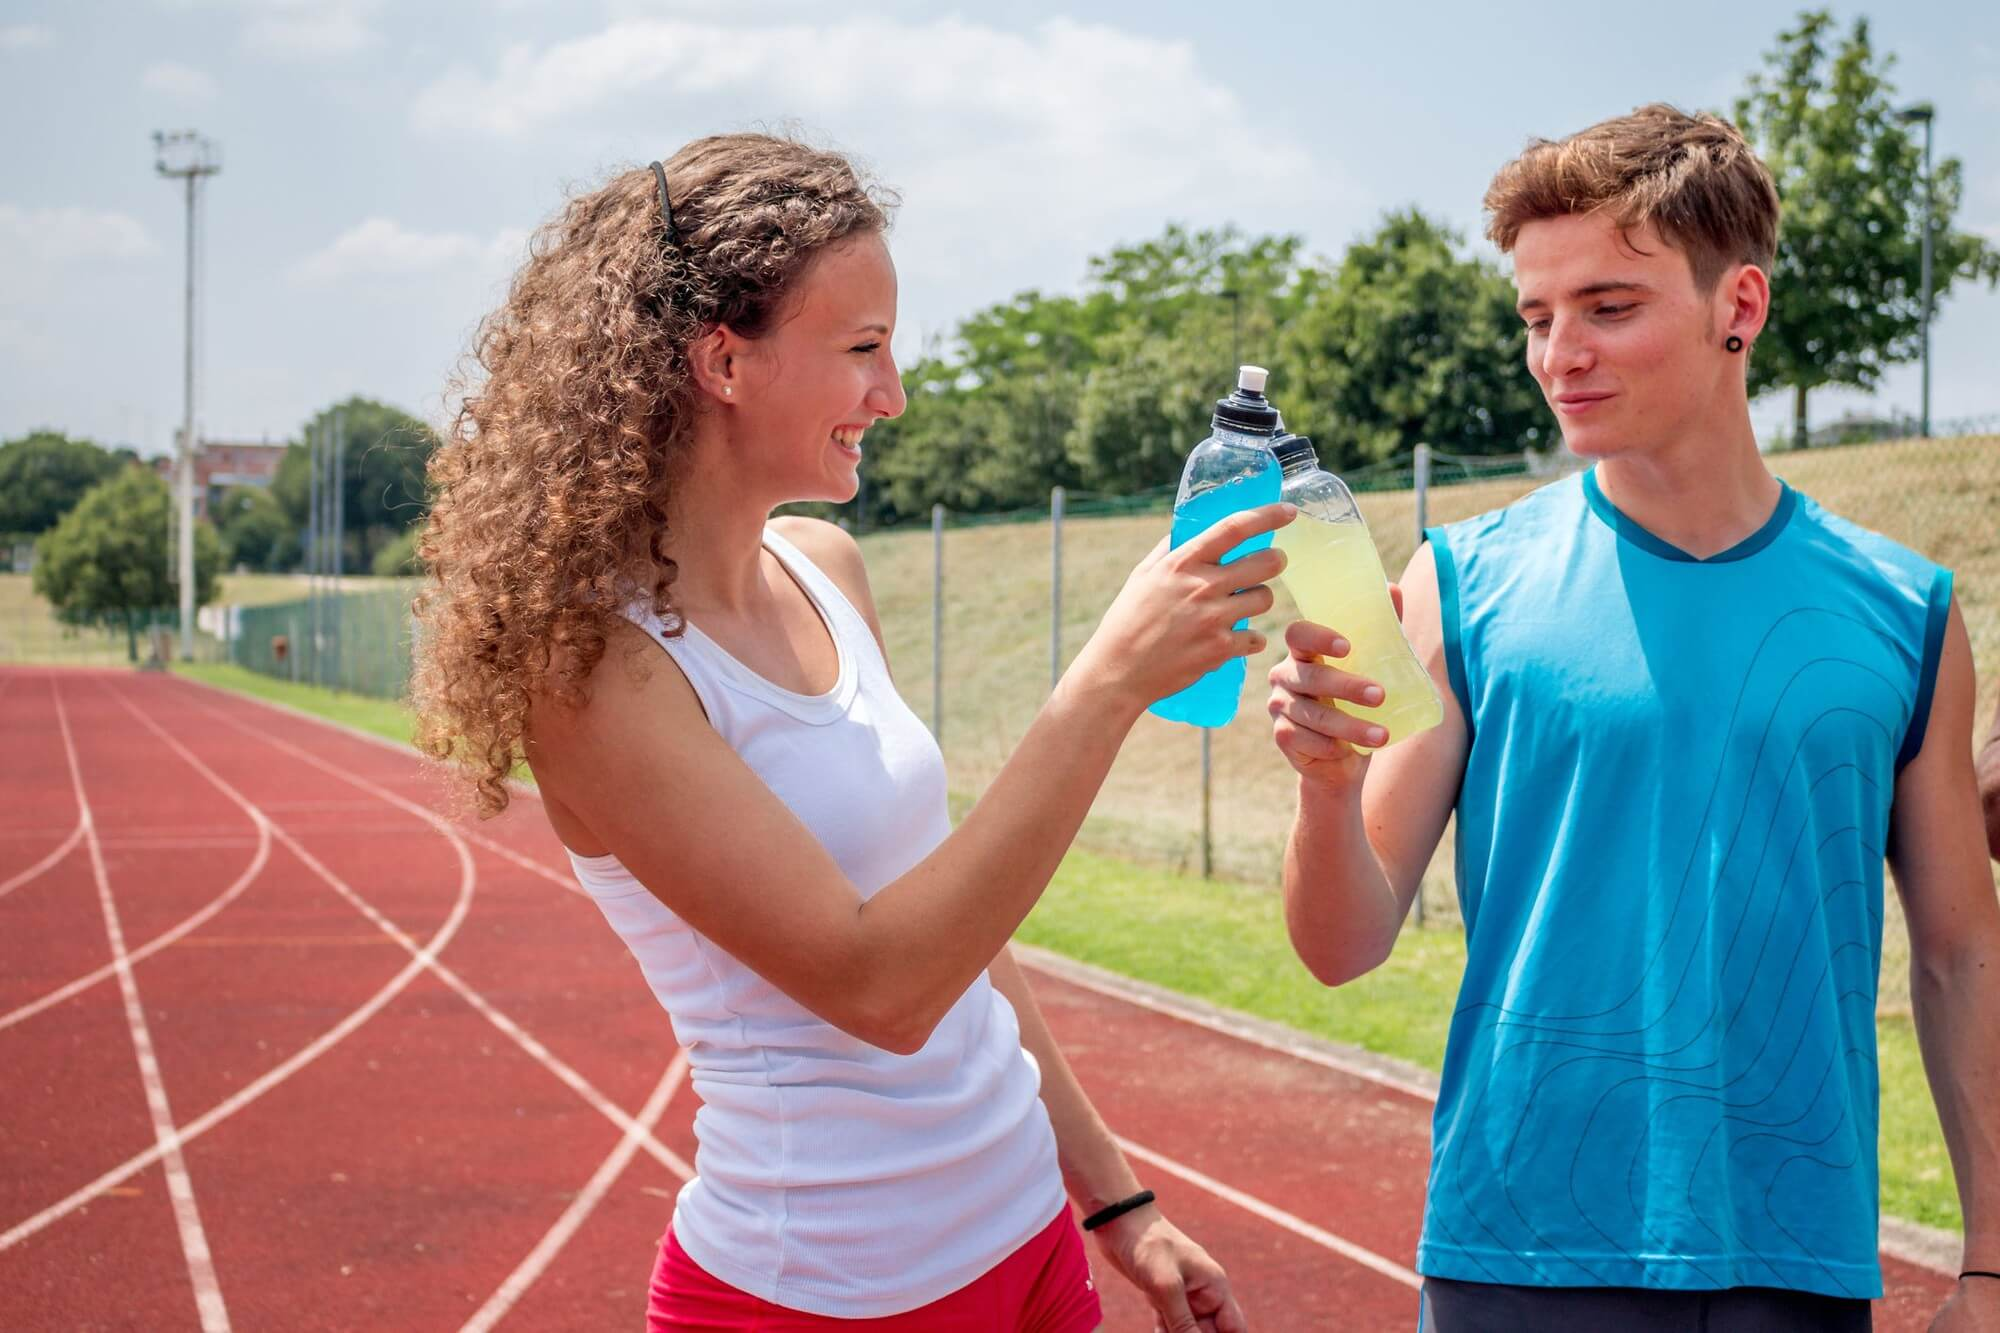 Which of the following is true about energy drinks health and mixers